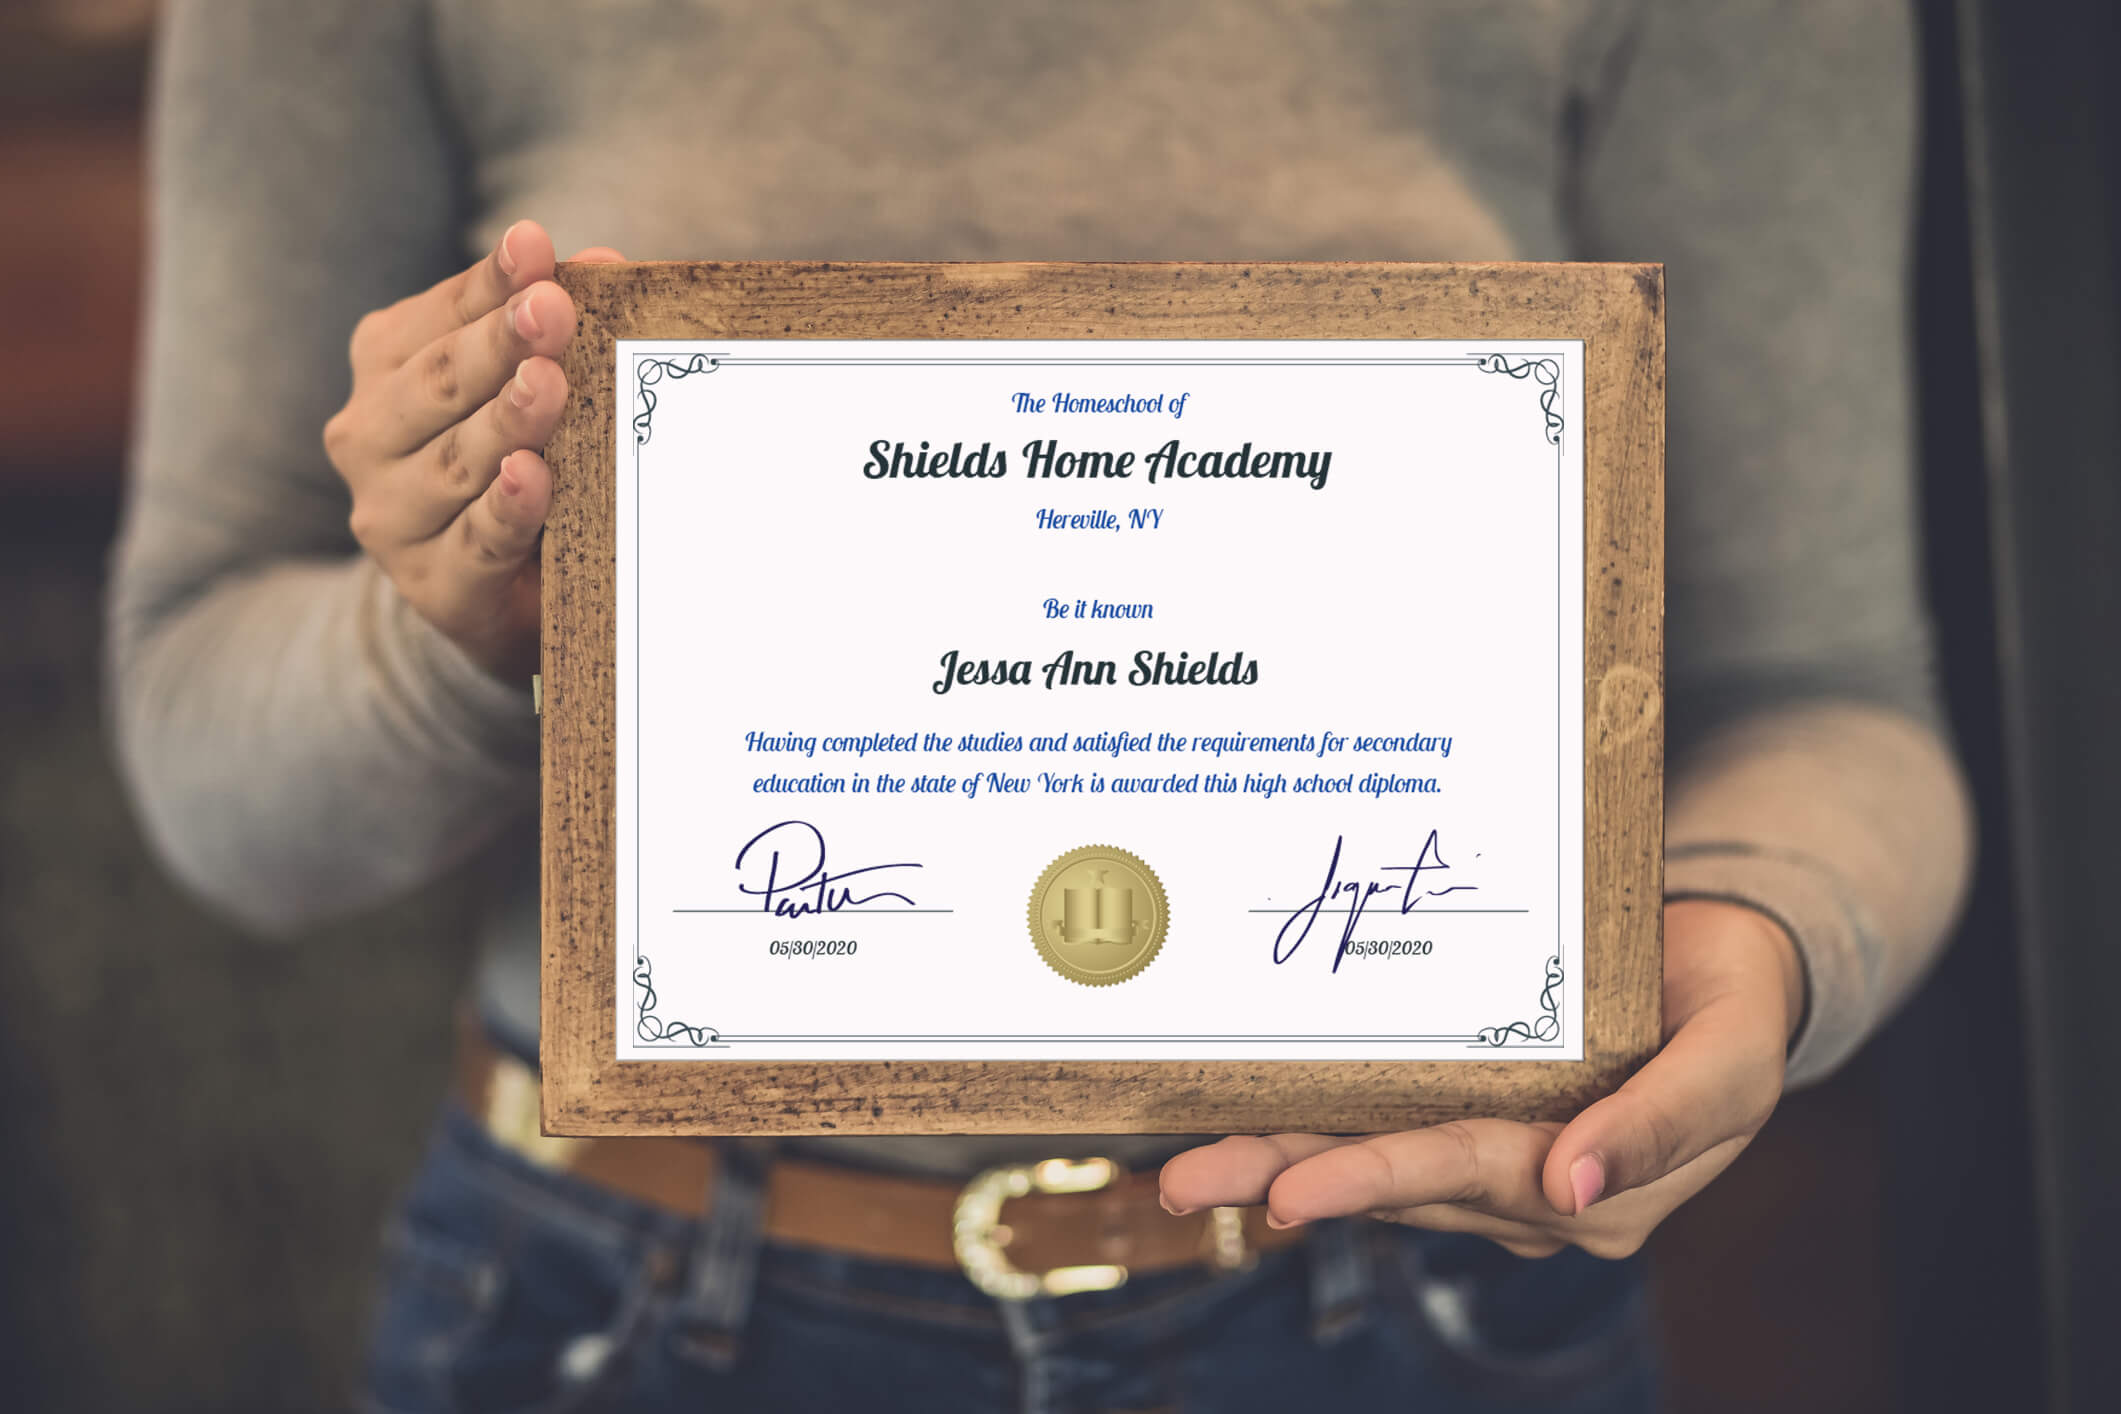 It's just a picture of Printable Home School Diploma intended for certificate completion